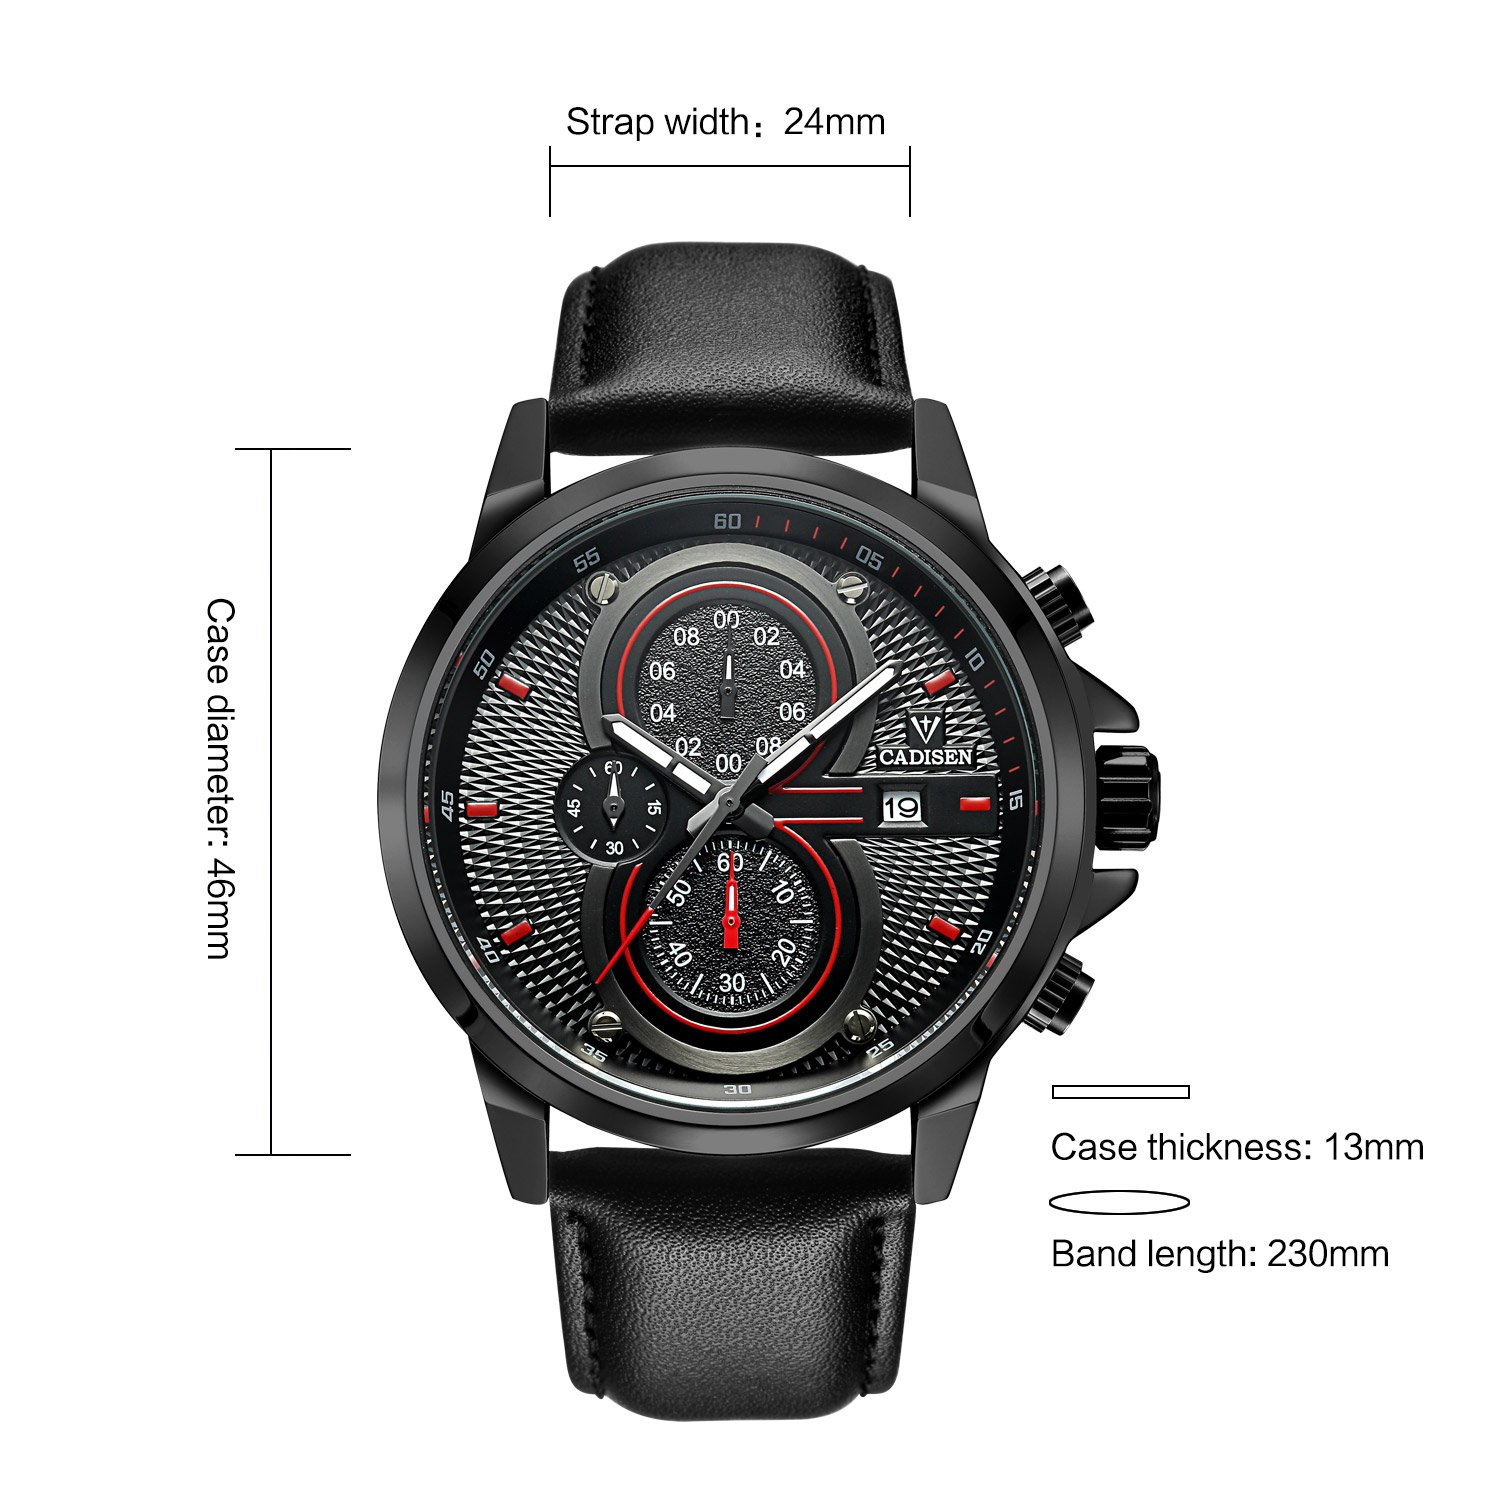 Amazon.com: Military Watches Men Business Watches Waterproof Sports Analog Quartz Watch Military Chronograph: Watches